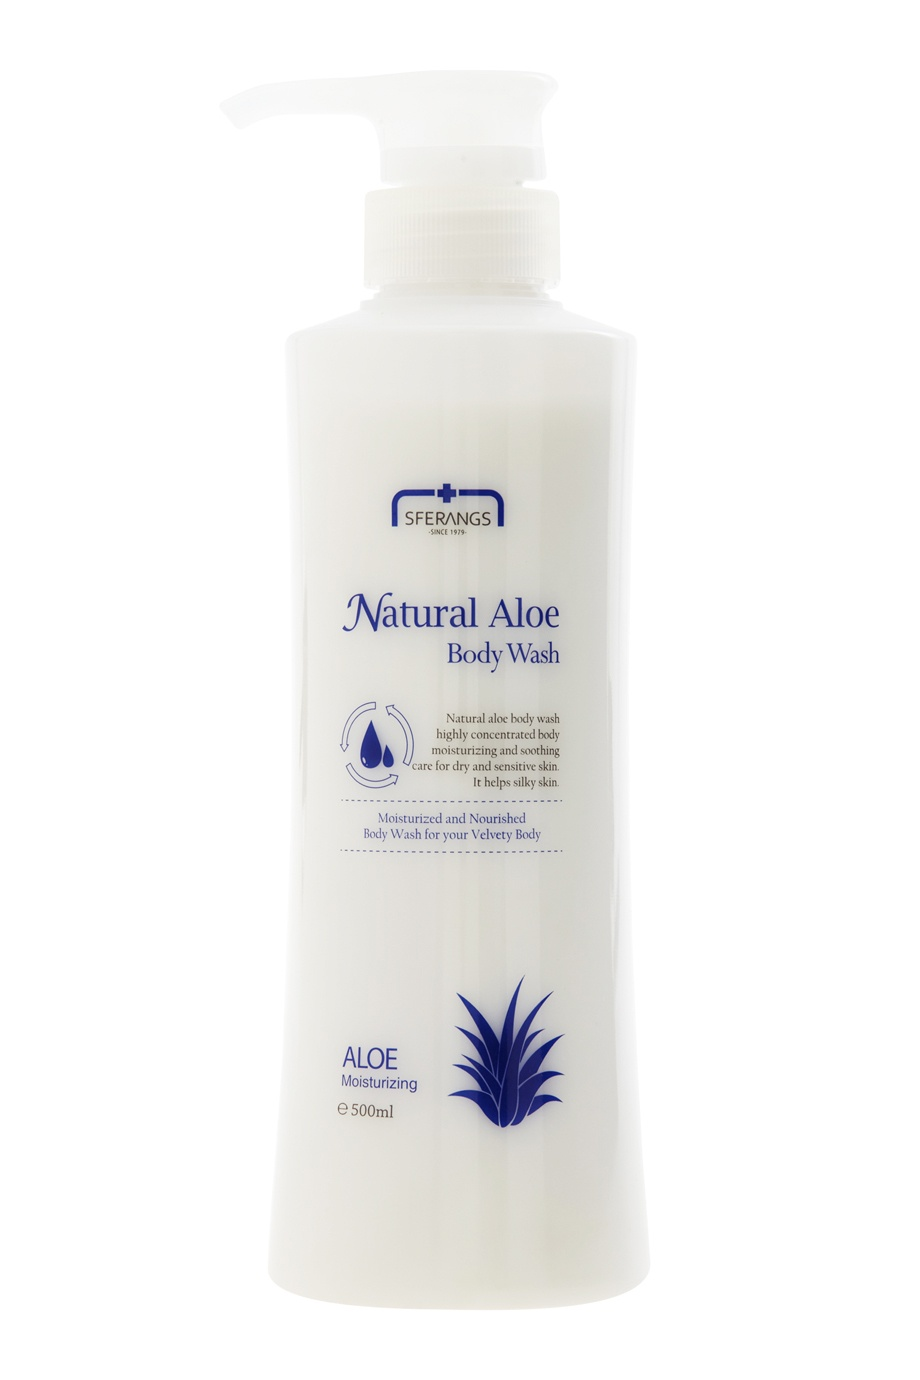 Гель для душа Natural Aloe, 500ml Sferangs (фото)